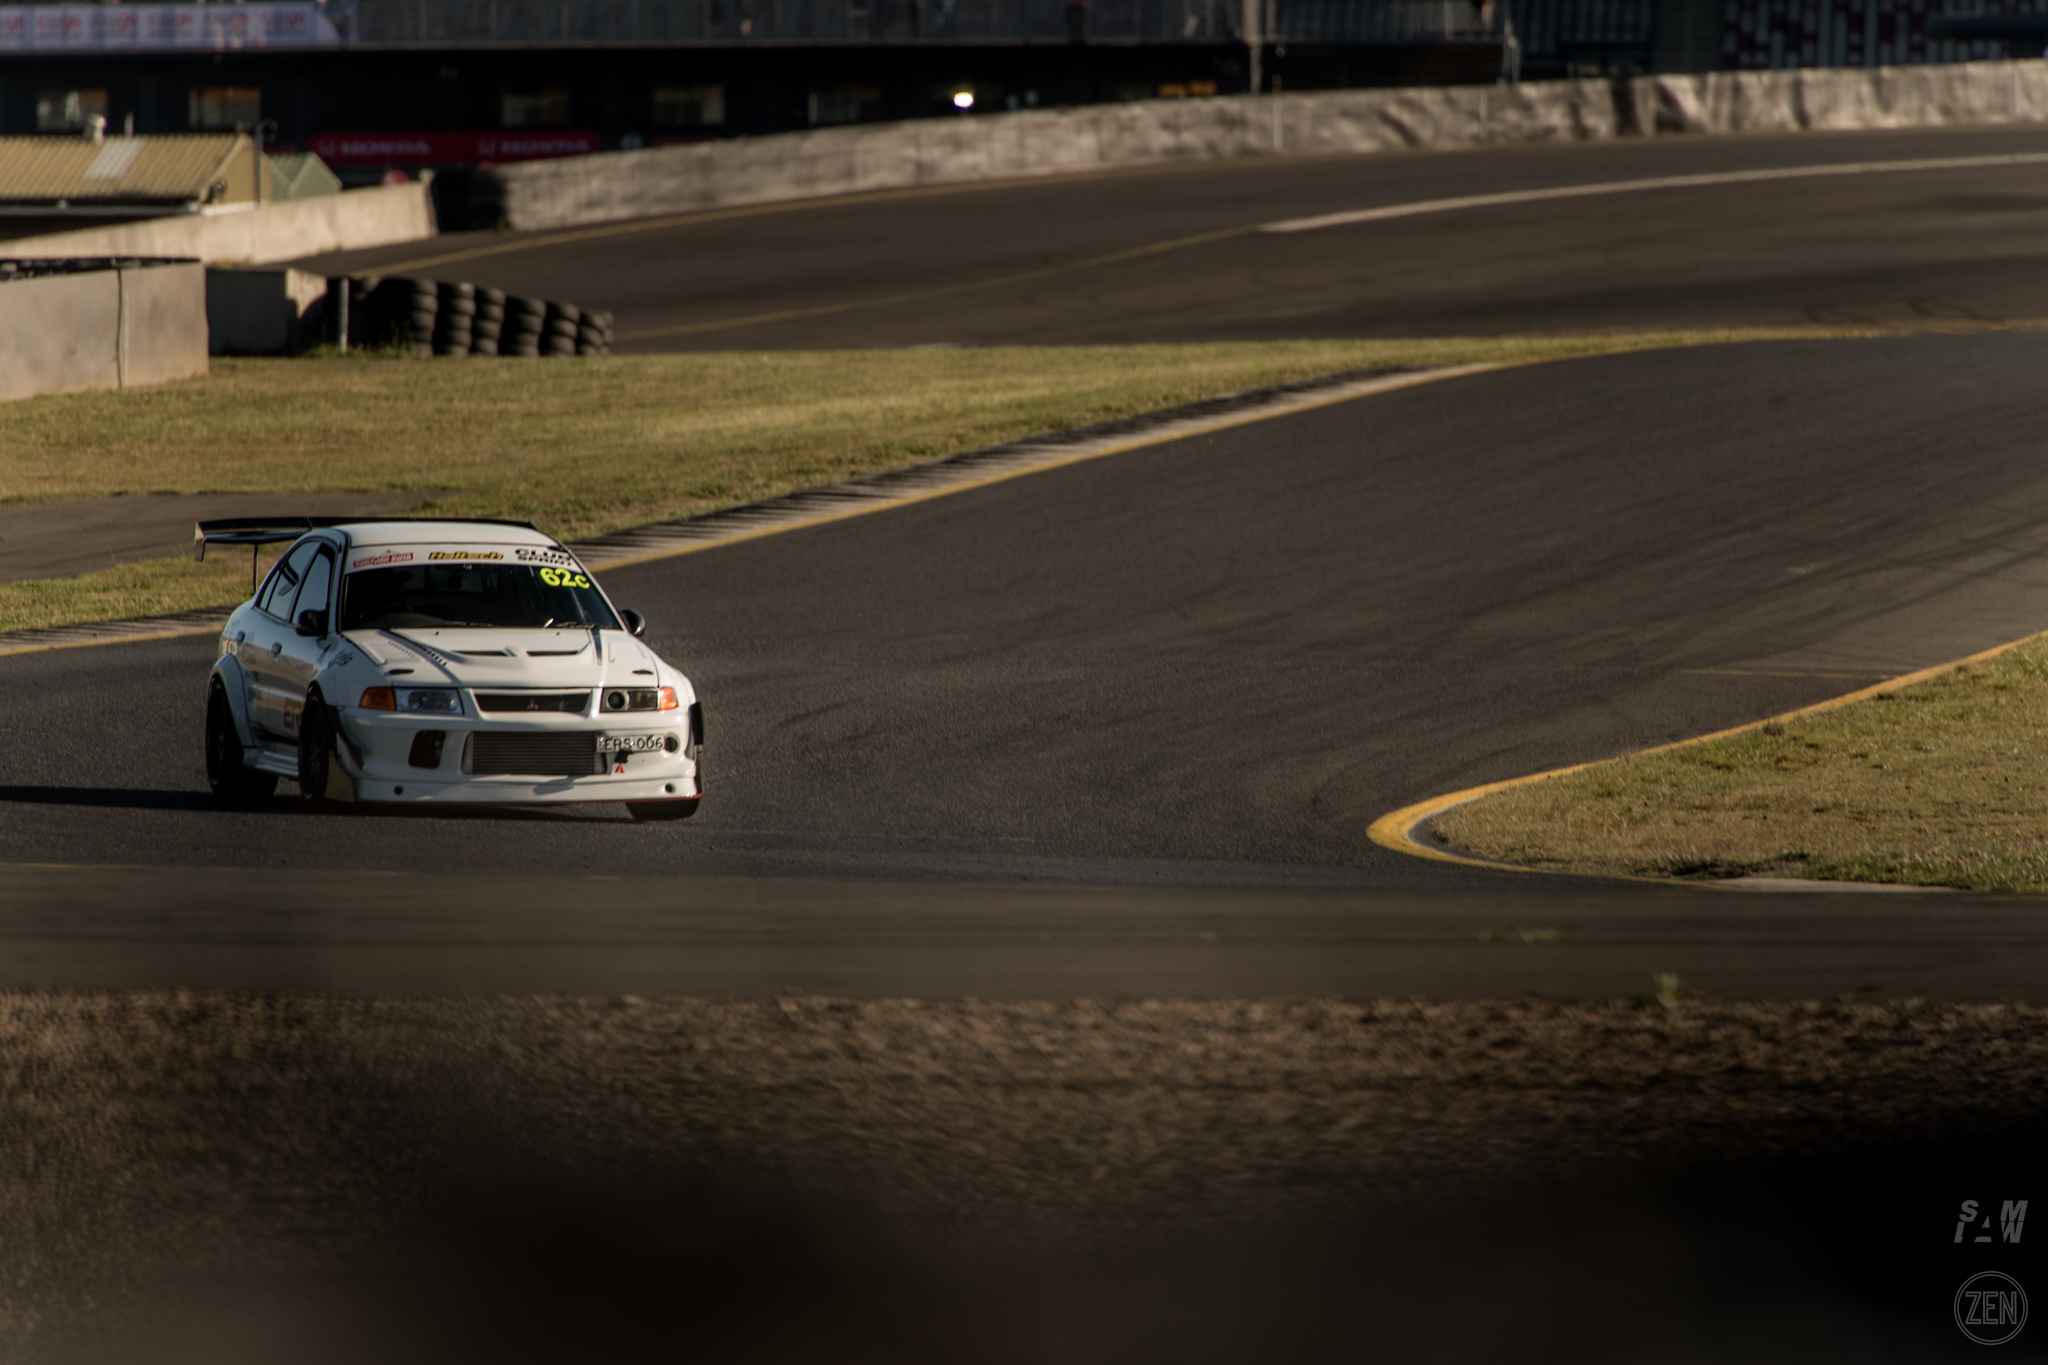 2019-10-19 - WTAC Day 2 010